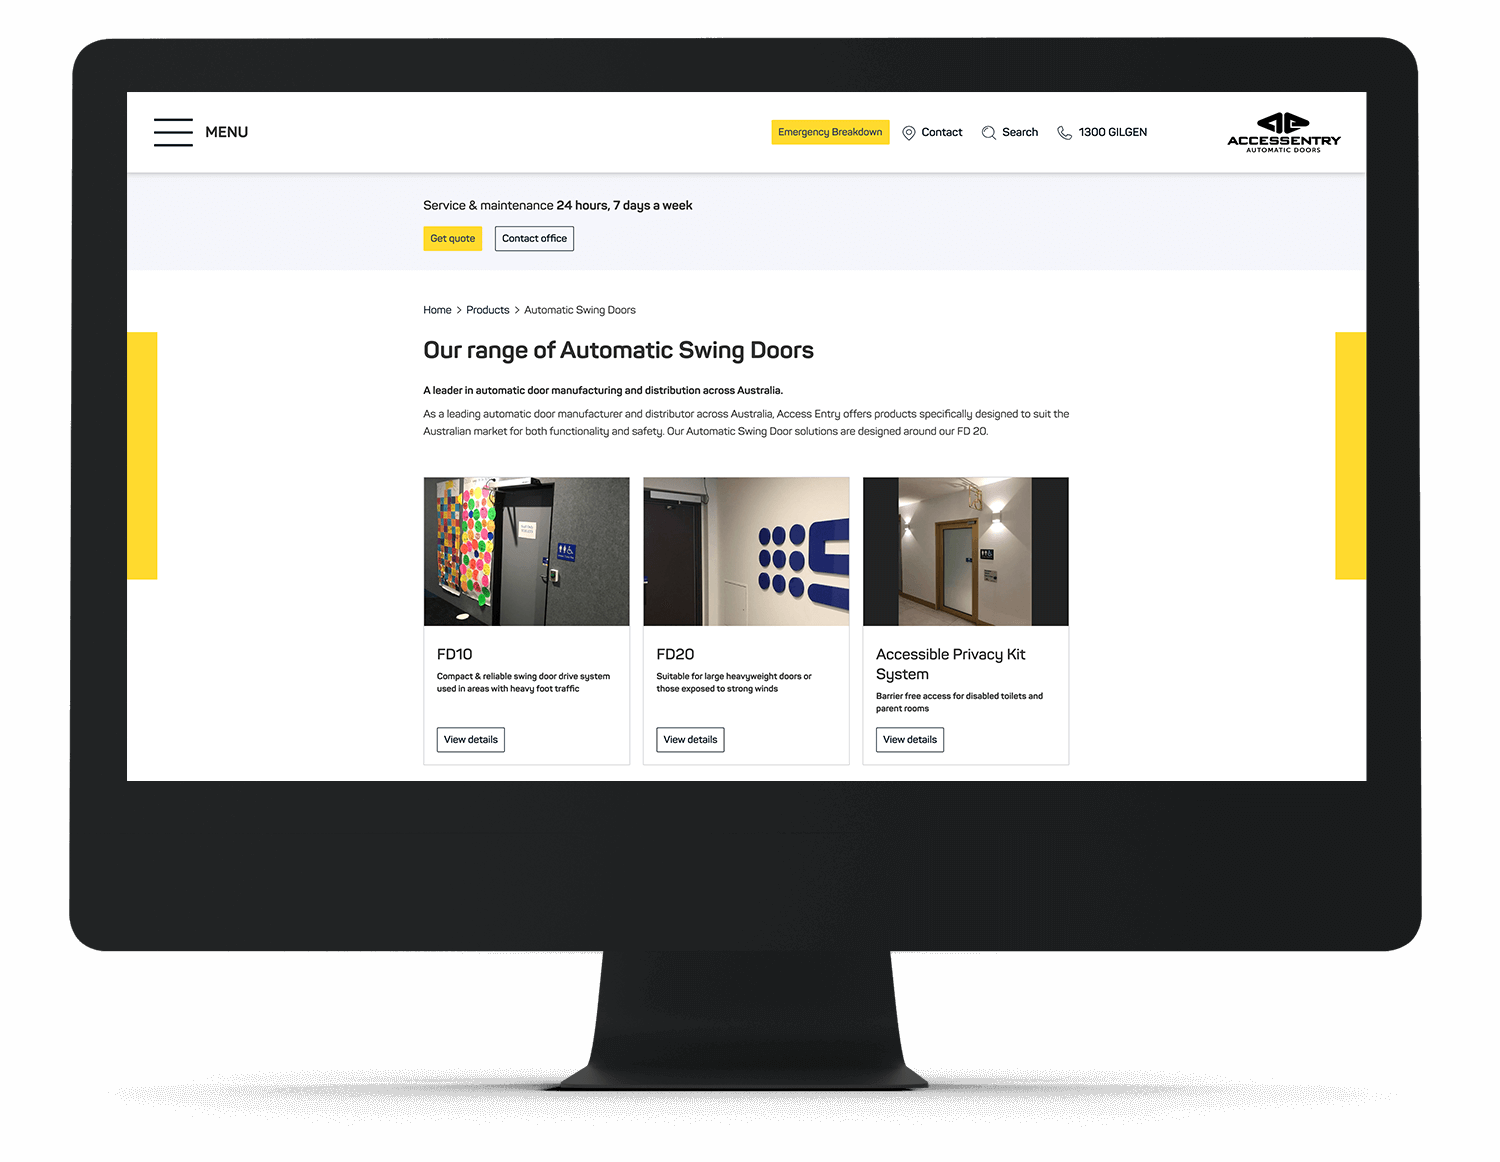 Access Entry automatic doors website on an iMac